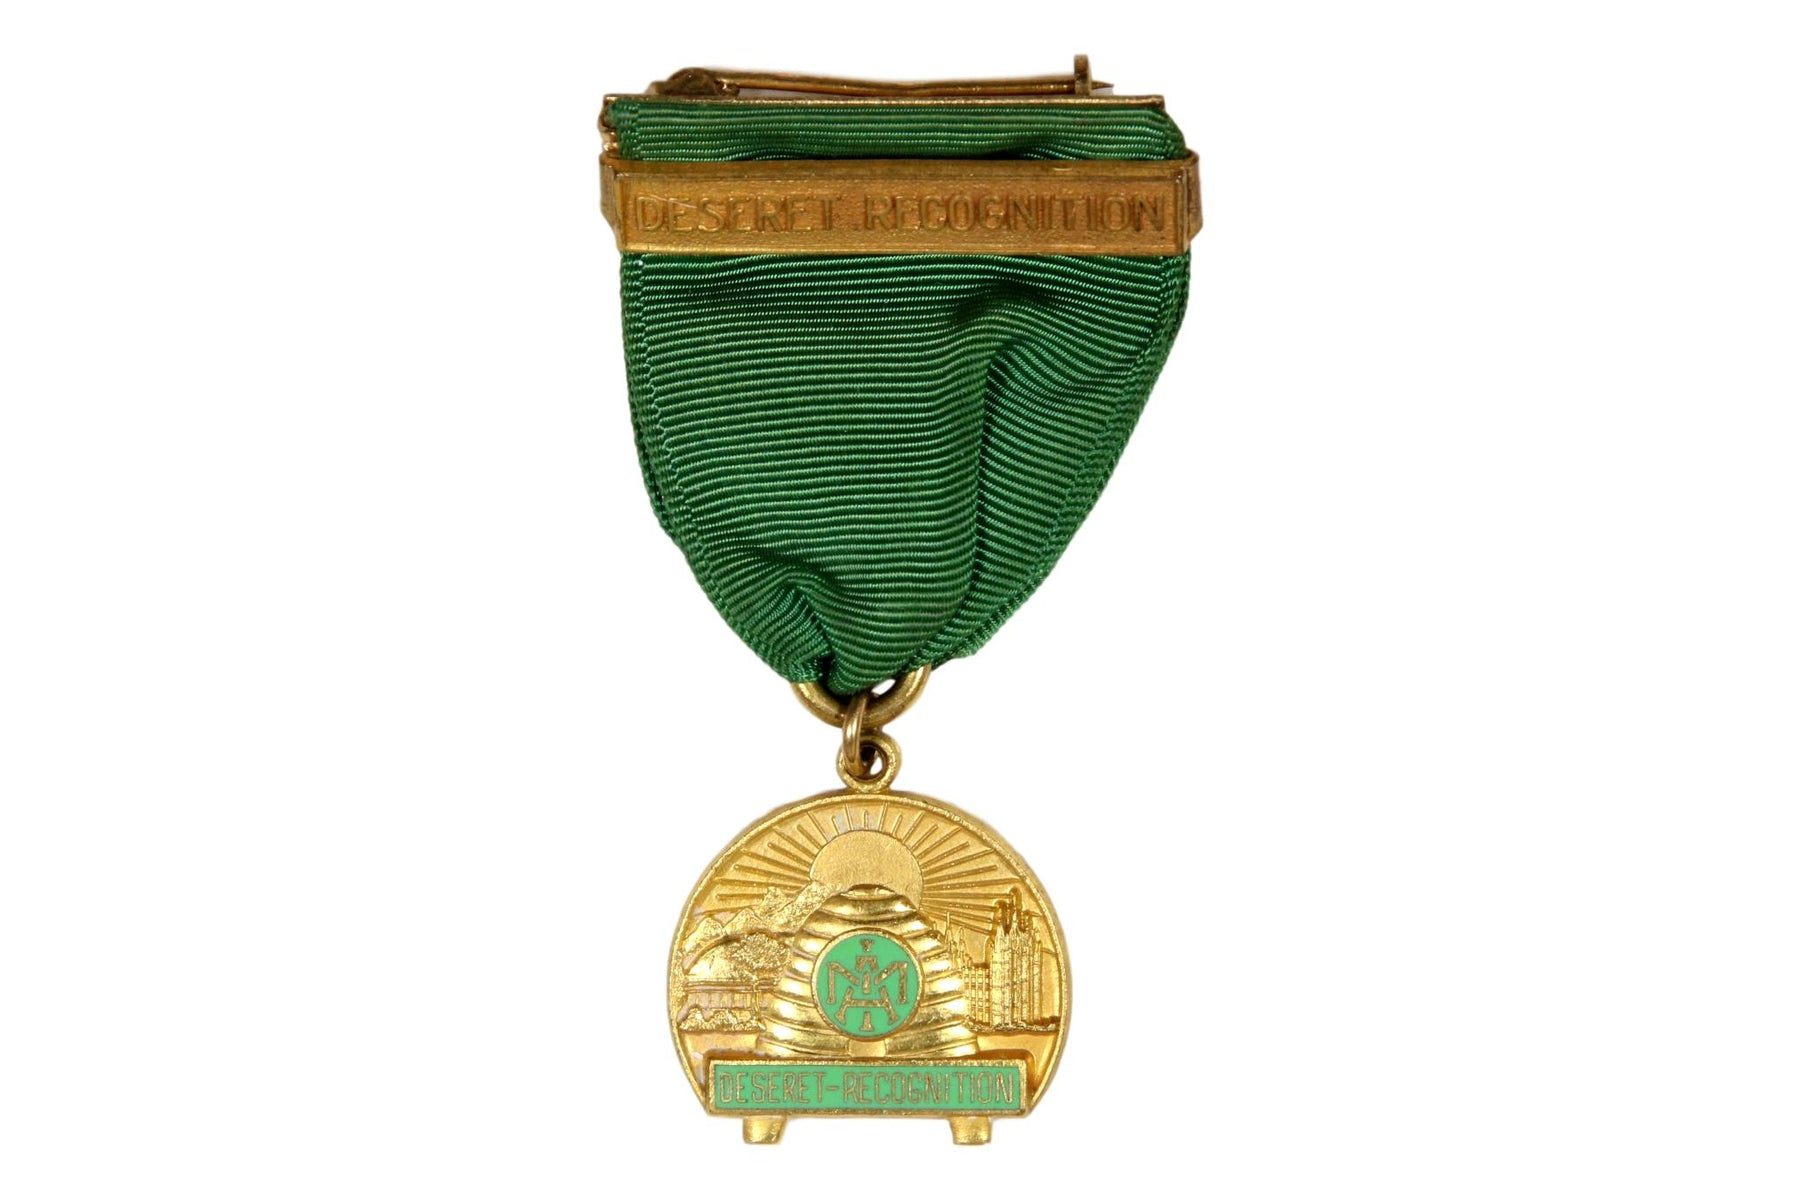 LDS Deseret Recognition Medal Type 2A